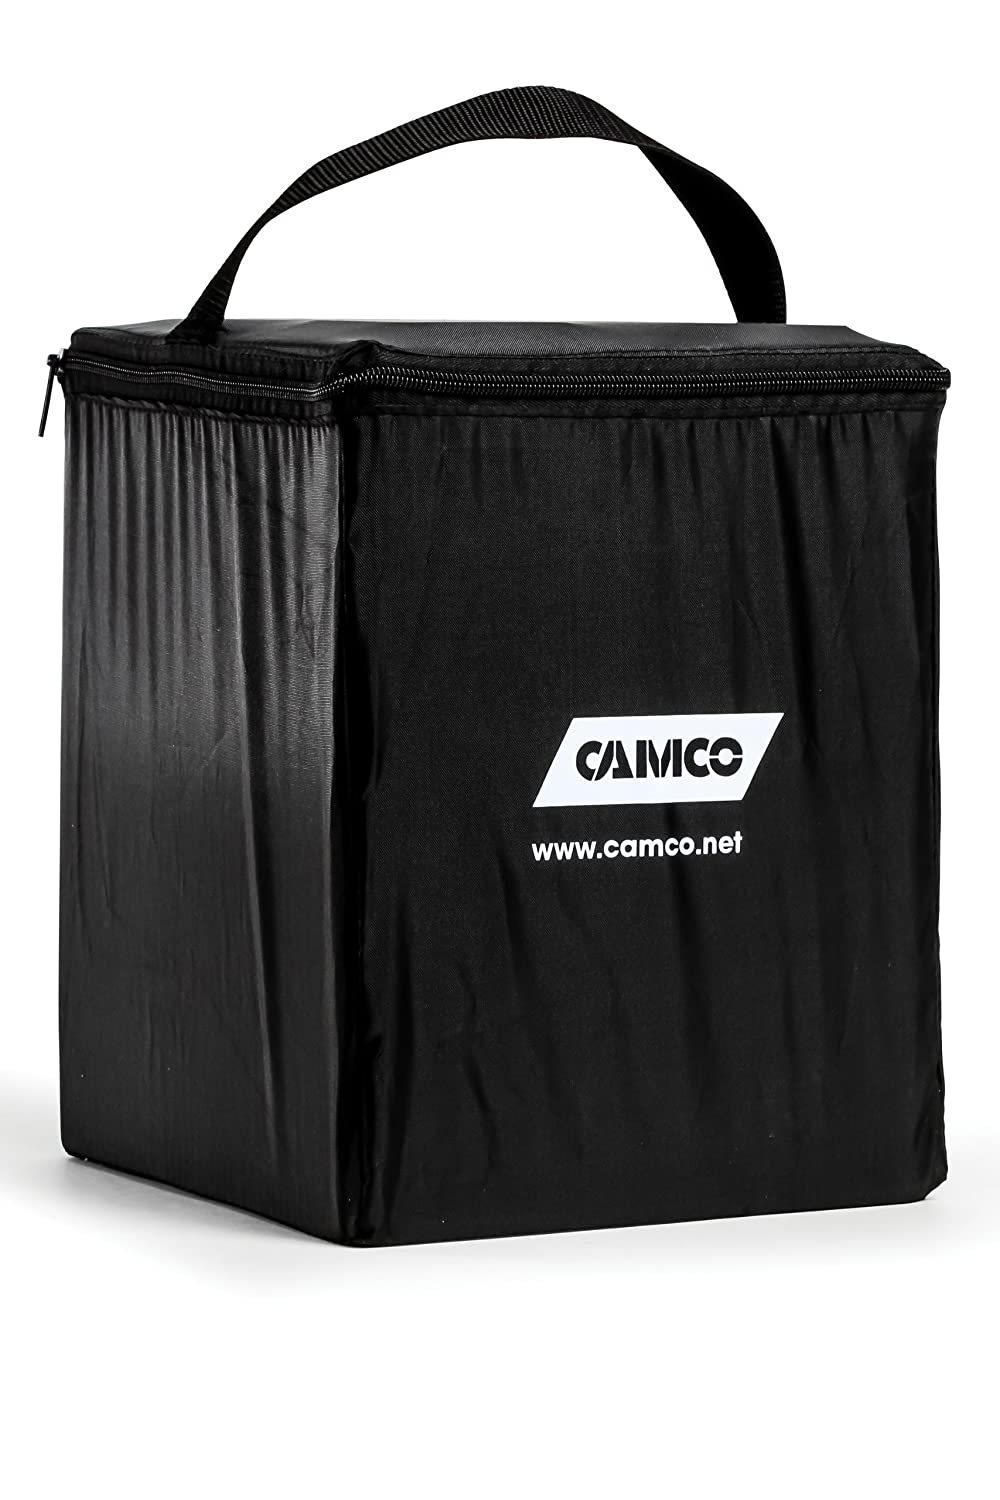 Camco 44501 RV Leveling Blocks 4-Pack